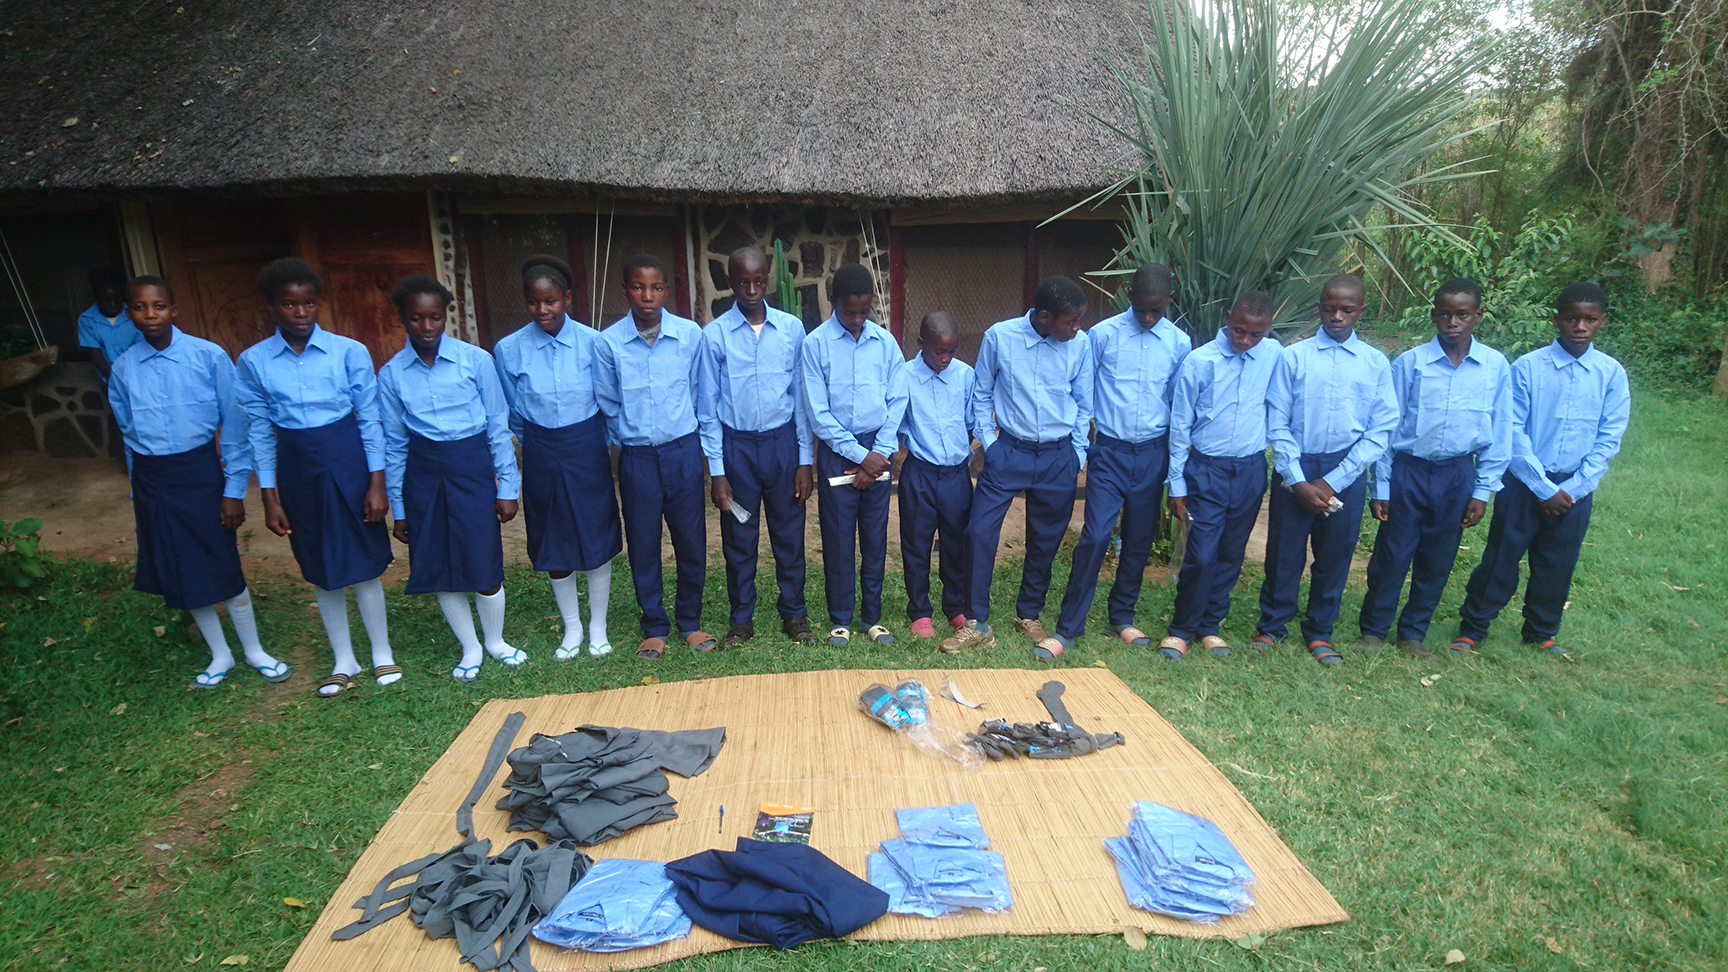 School students getting fitted with donated uniforms